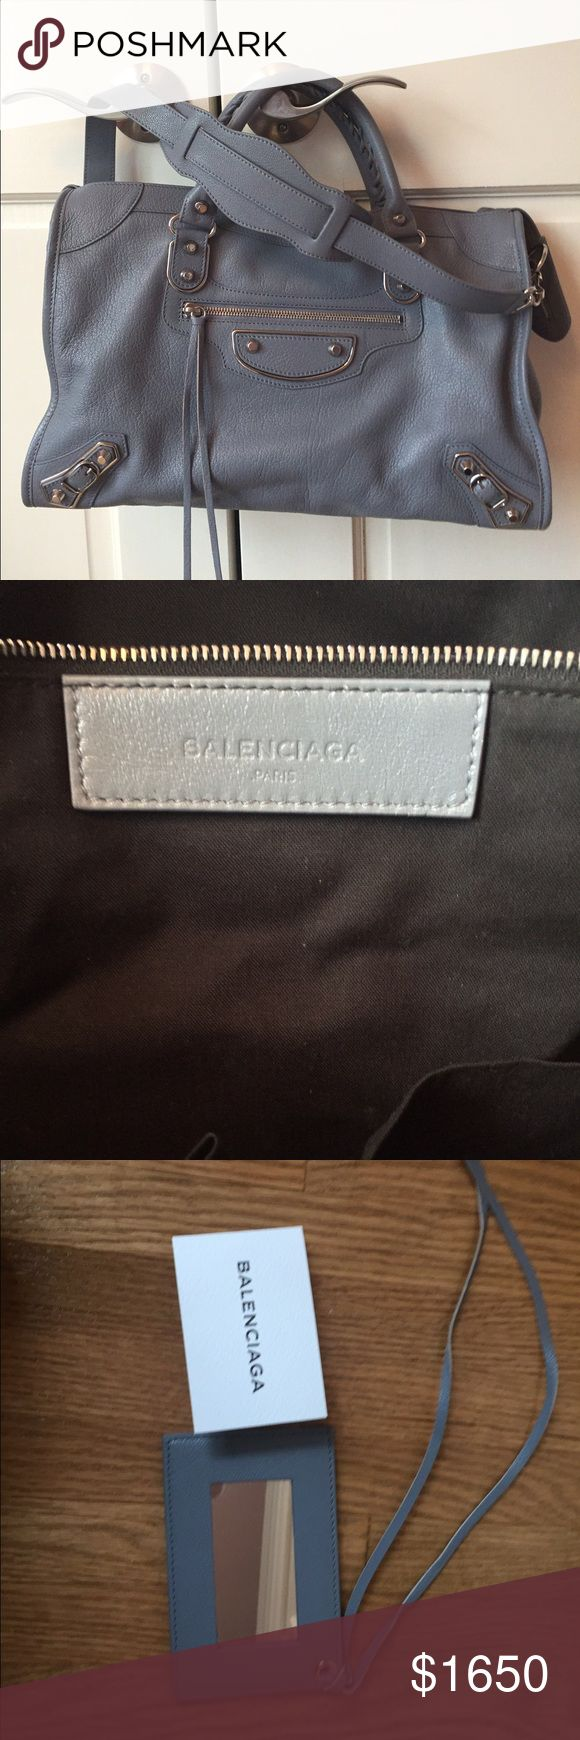 Balenciaga handbag Like new in Excellent condition Balenciaga Bags Satchels